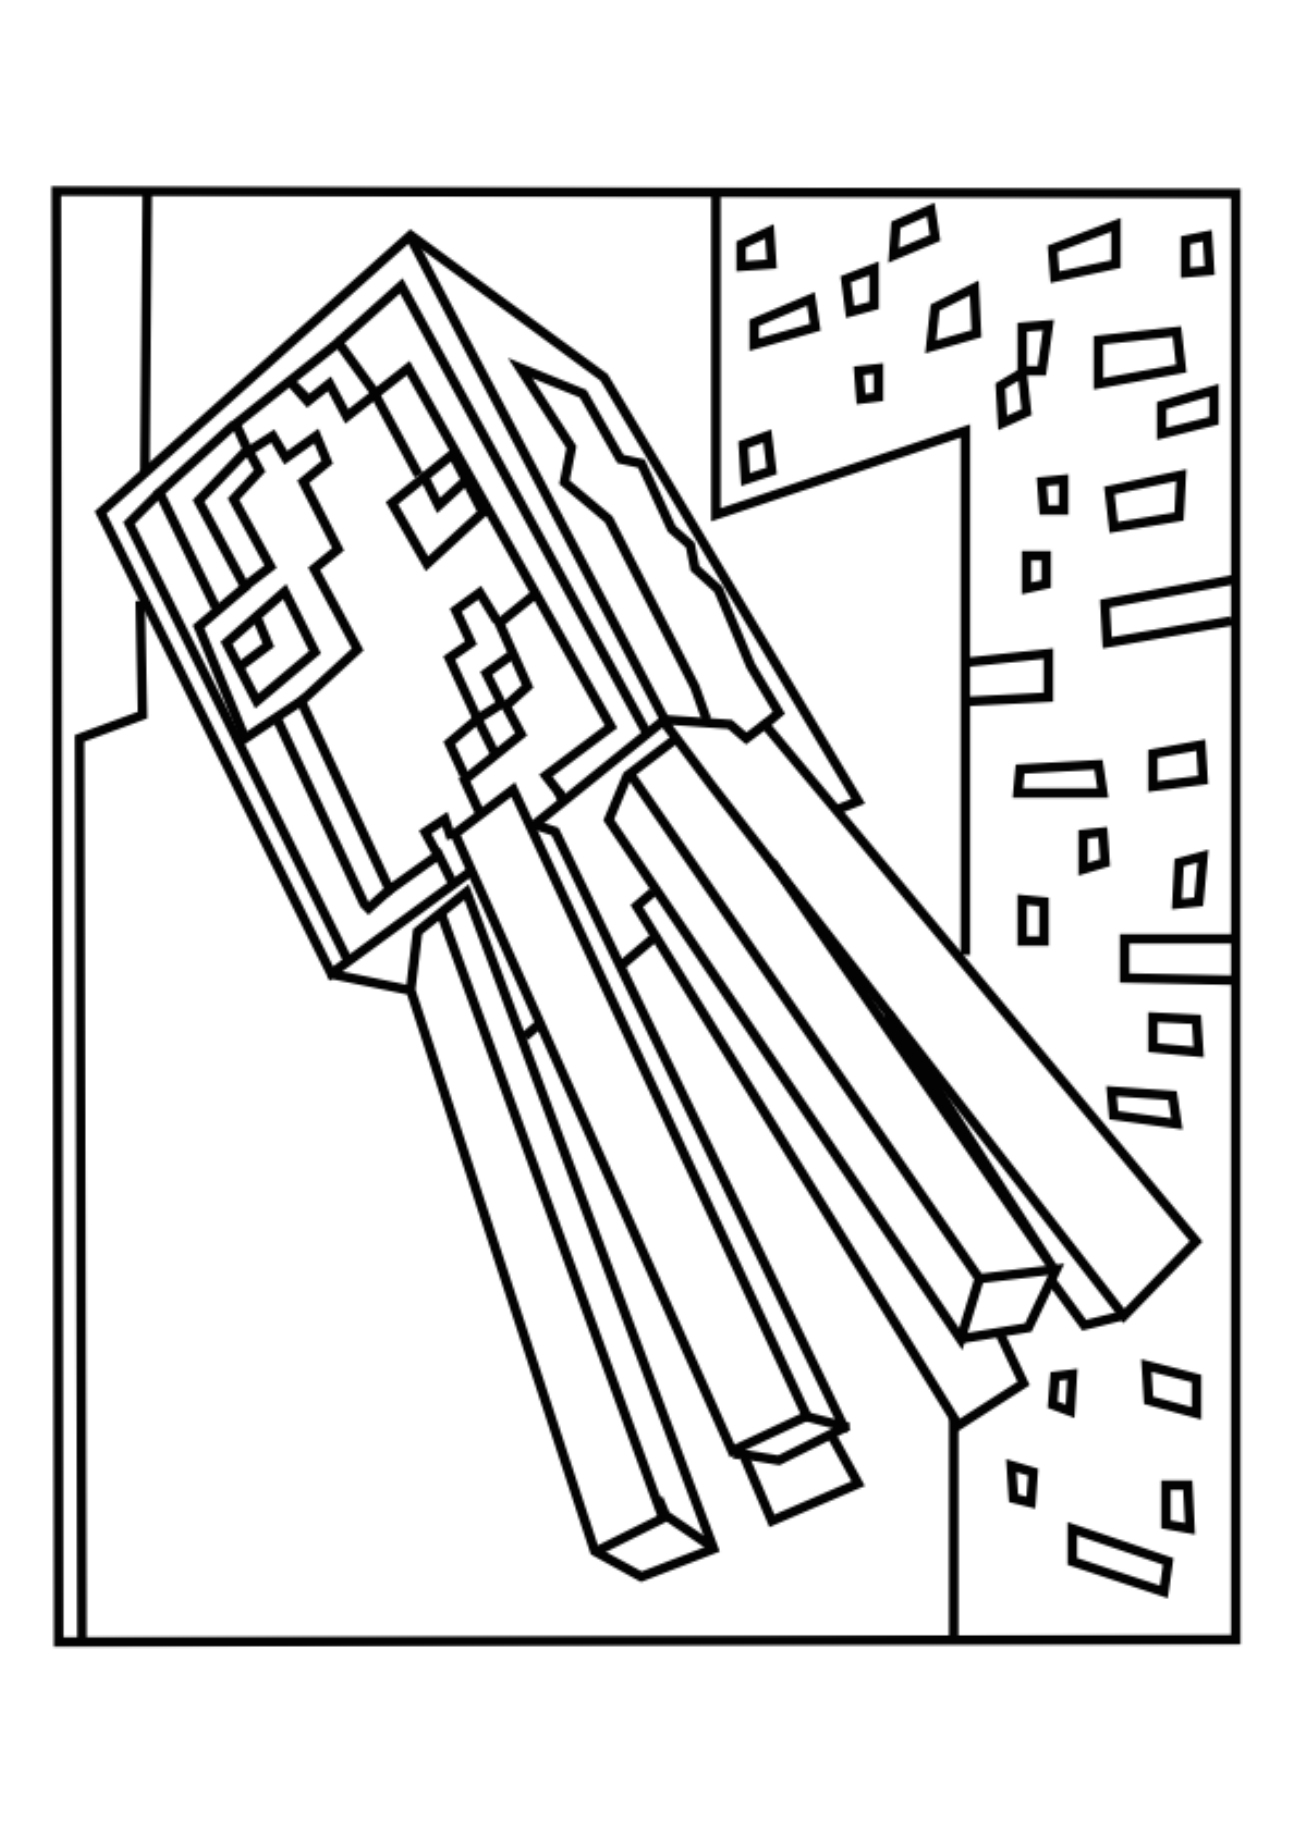 1295x1832 Squid And Spider Minecraft Coloring Pages Free Printable